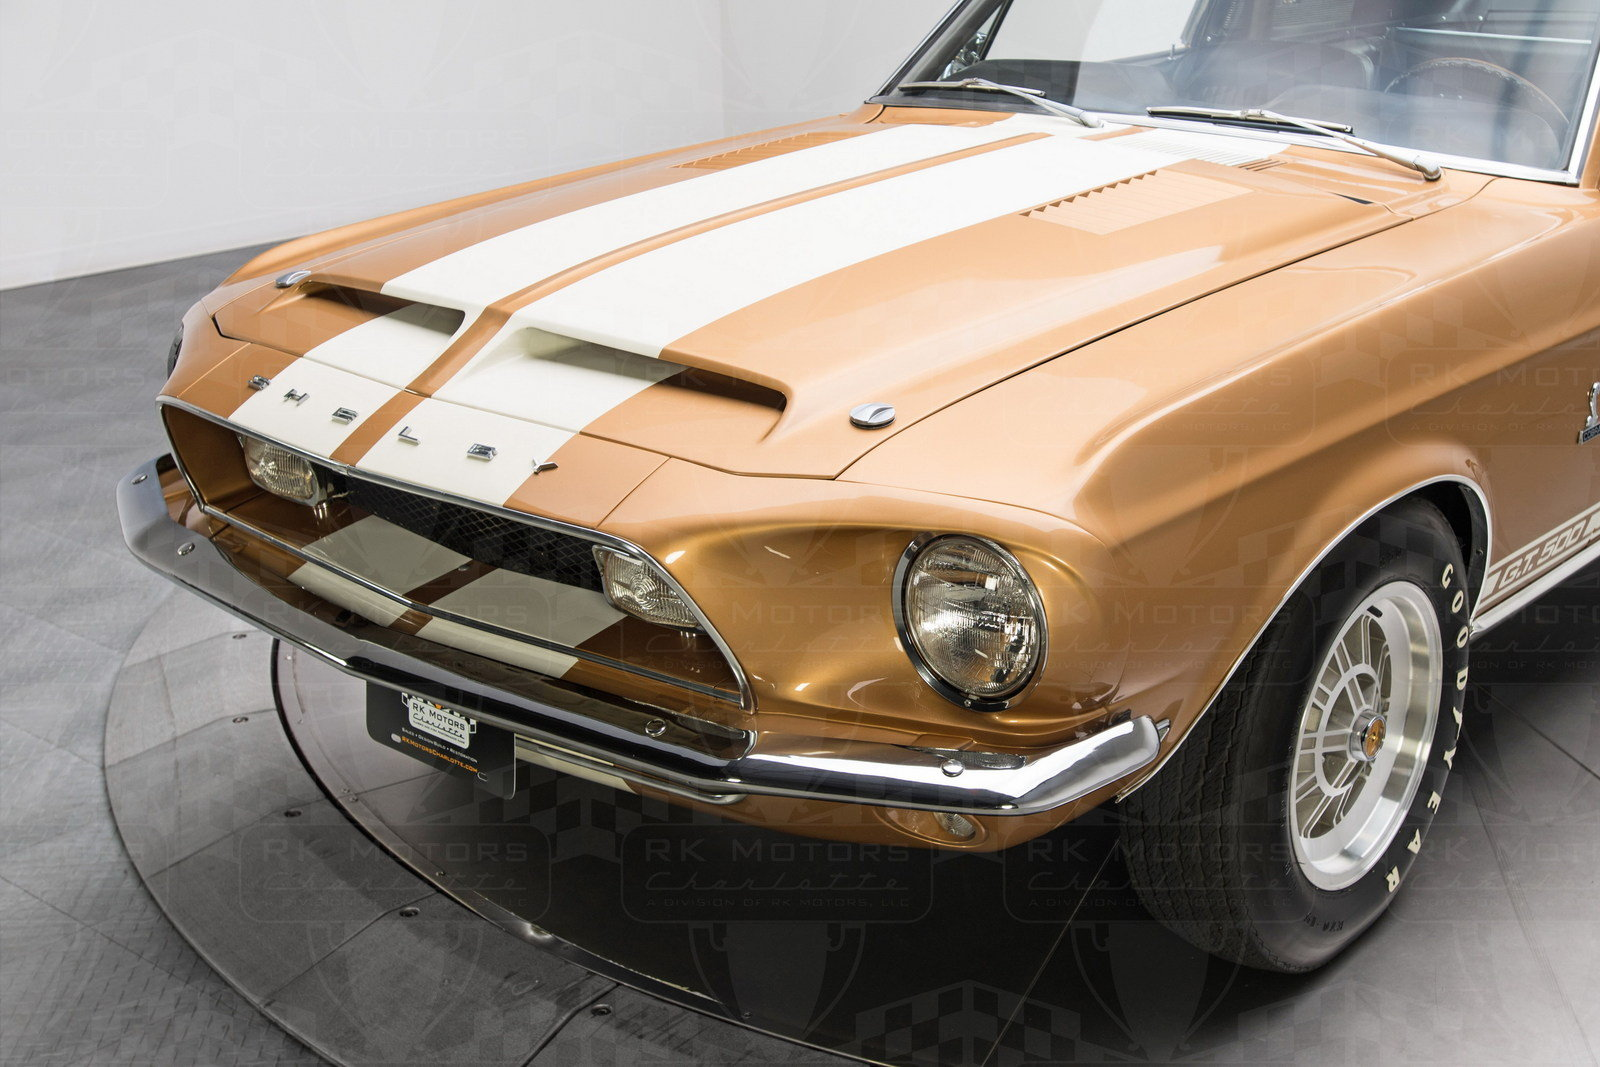 1968 ford shelby mustang gt500 picture 561744 car review top speed. Black Bedroom Furniture Sets. Home Design Ideas